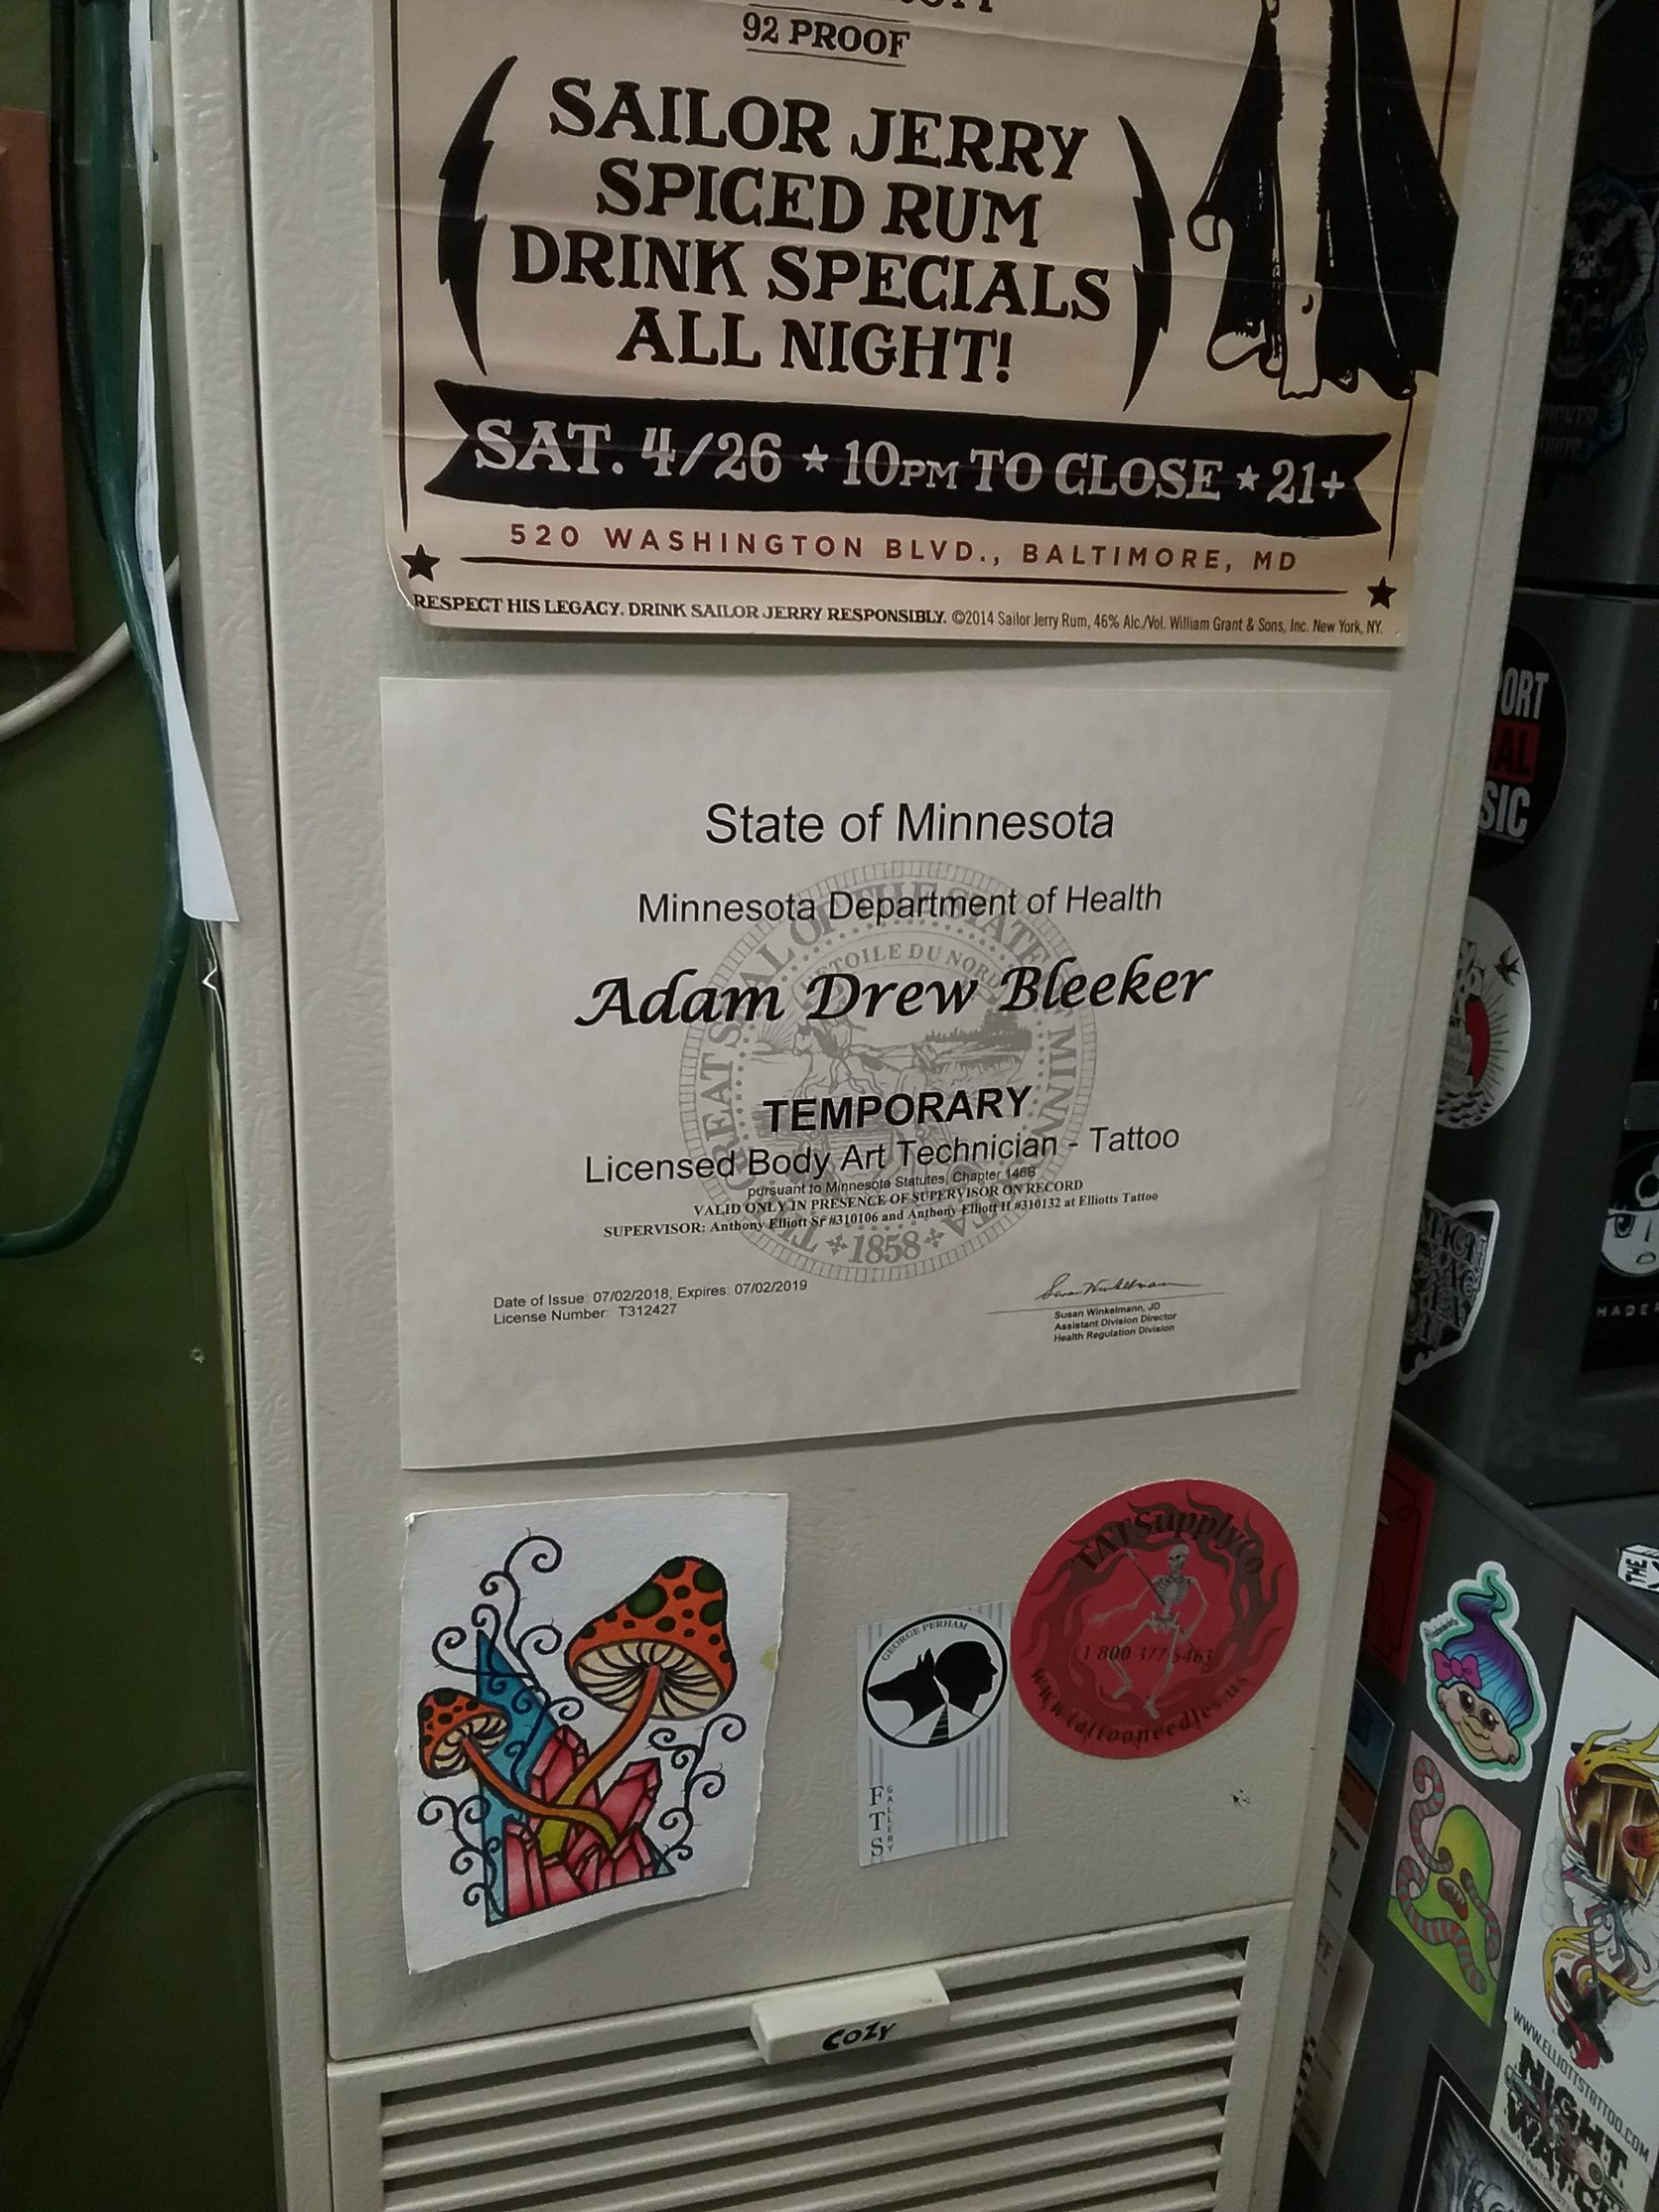 Adam Bleeker's temporary tattoo license that allows him to work as an apprentice at Elliott's Tattoo in Little Falls, MN, February 9, 2019. Photo by Morrison County Historical Society.